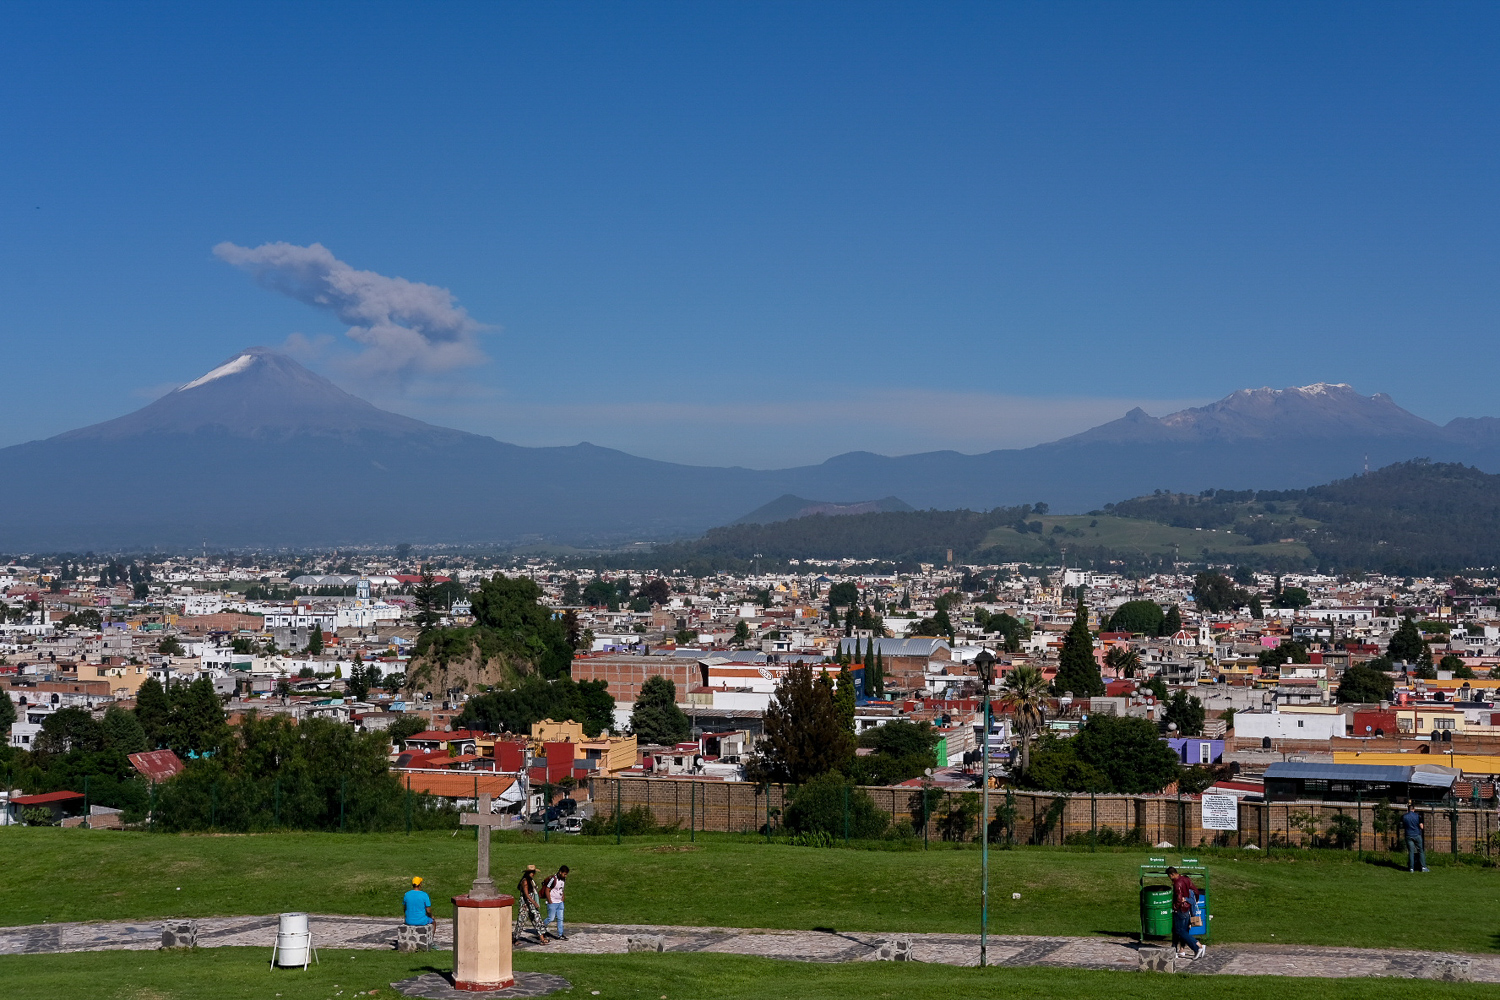 This was the view our team enjoyed in Cholula, the oldest inhabited city in Mexico. The smoking peak on the left is Popocatéptl and the group of snow-capped peaks on the right is Izztacíhuatl. These volcanoes are two of the tallest in the hemisphere and are the inspiration for an  ancient story about two young lovers.  Our team took in this view as we stood on what remains of the Great Pyramid of Cholula, the pyramid with the largest base in the world. We learned that the original builders of the pyramid chose this site because it aligned with the four major volcanoes in the region. It was fascinating to see how city planning and spiritual beliefs were intertwined. Examples of this could be found all over Mexico City and Puebla. It made me think about how we should always be intentional about the ways we design our built environment.